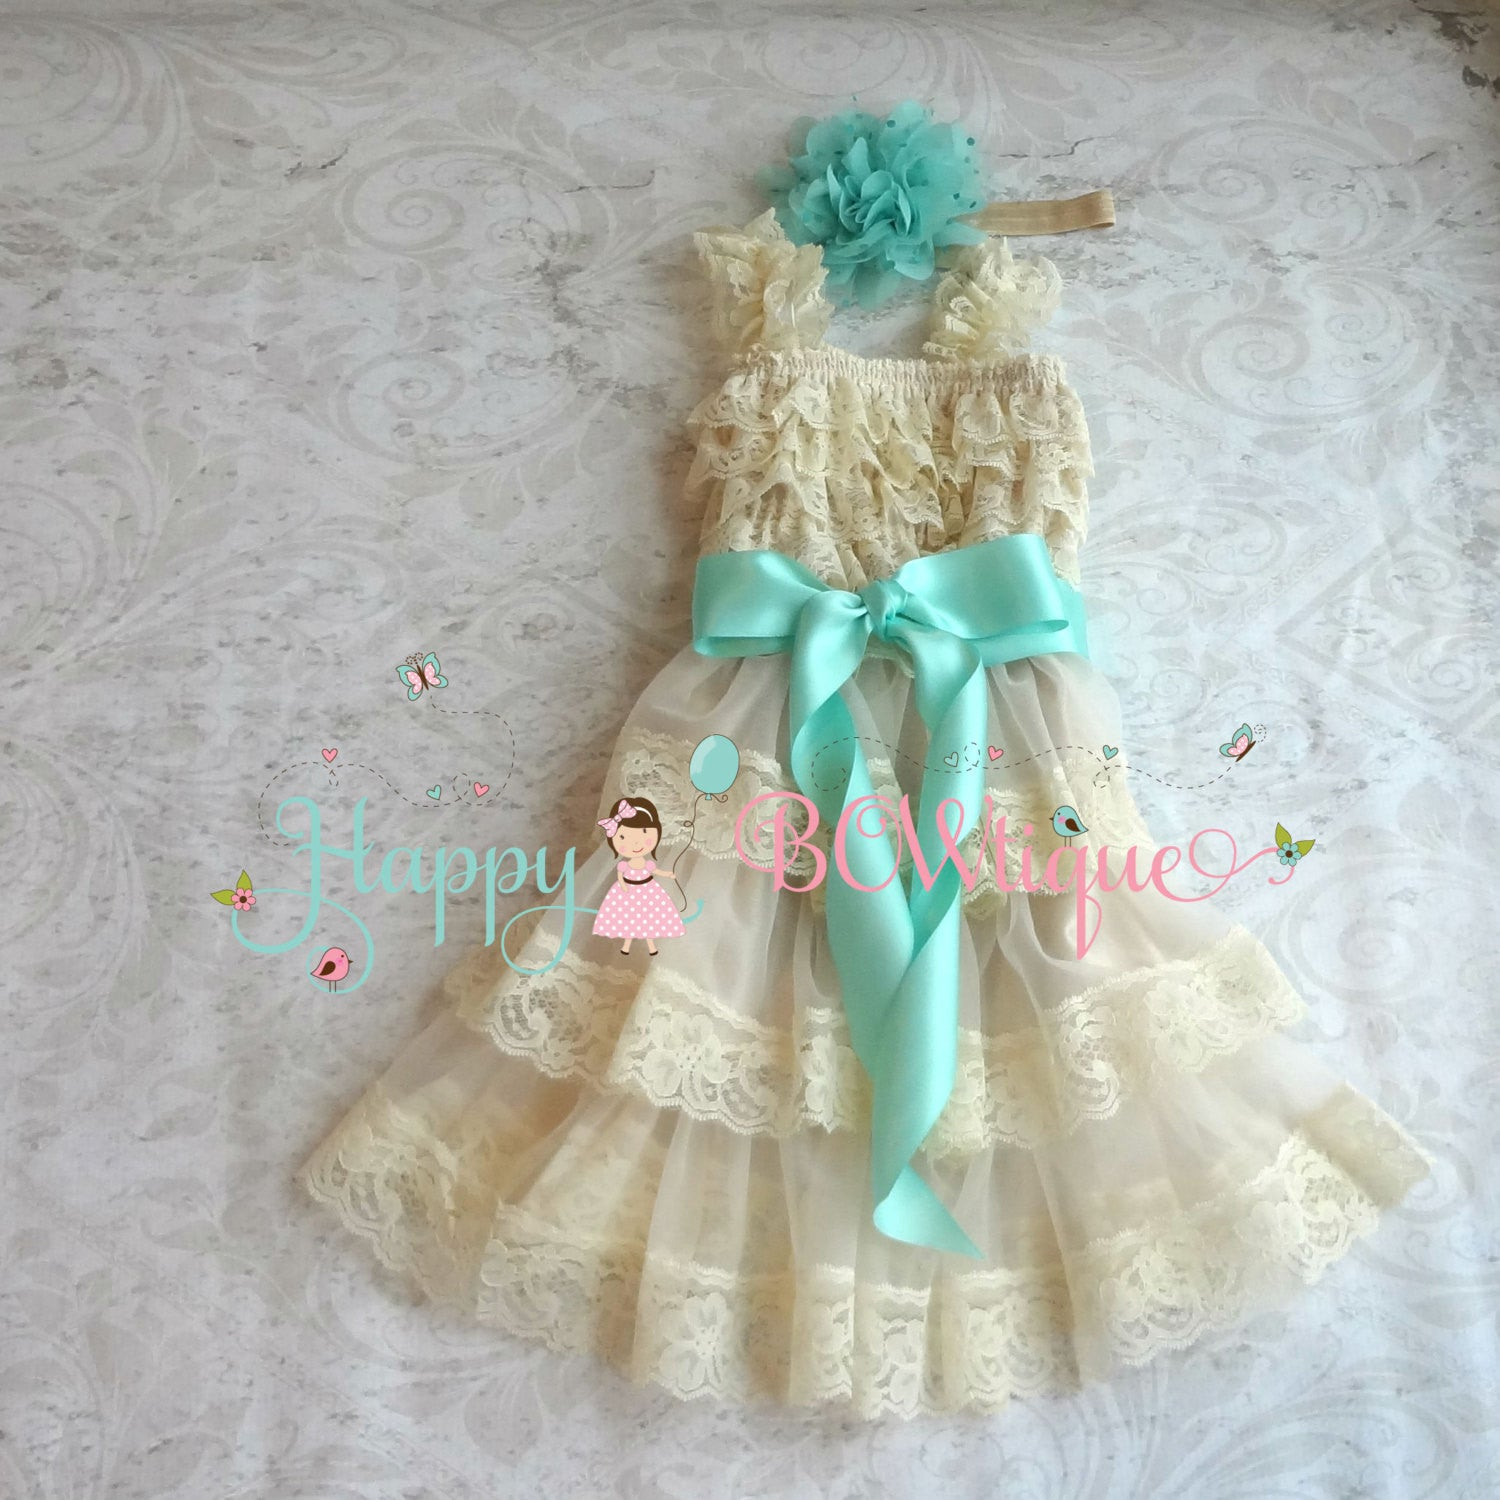 Girl's Champagne Dress / Champagne Aqua Mint Tier Dress set - Happy BOWtique - children's clothing, Baby Girl clothing